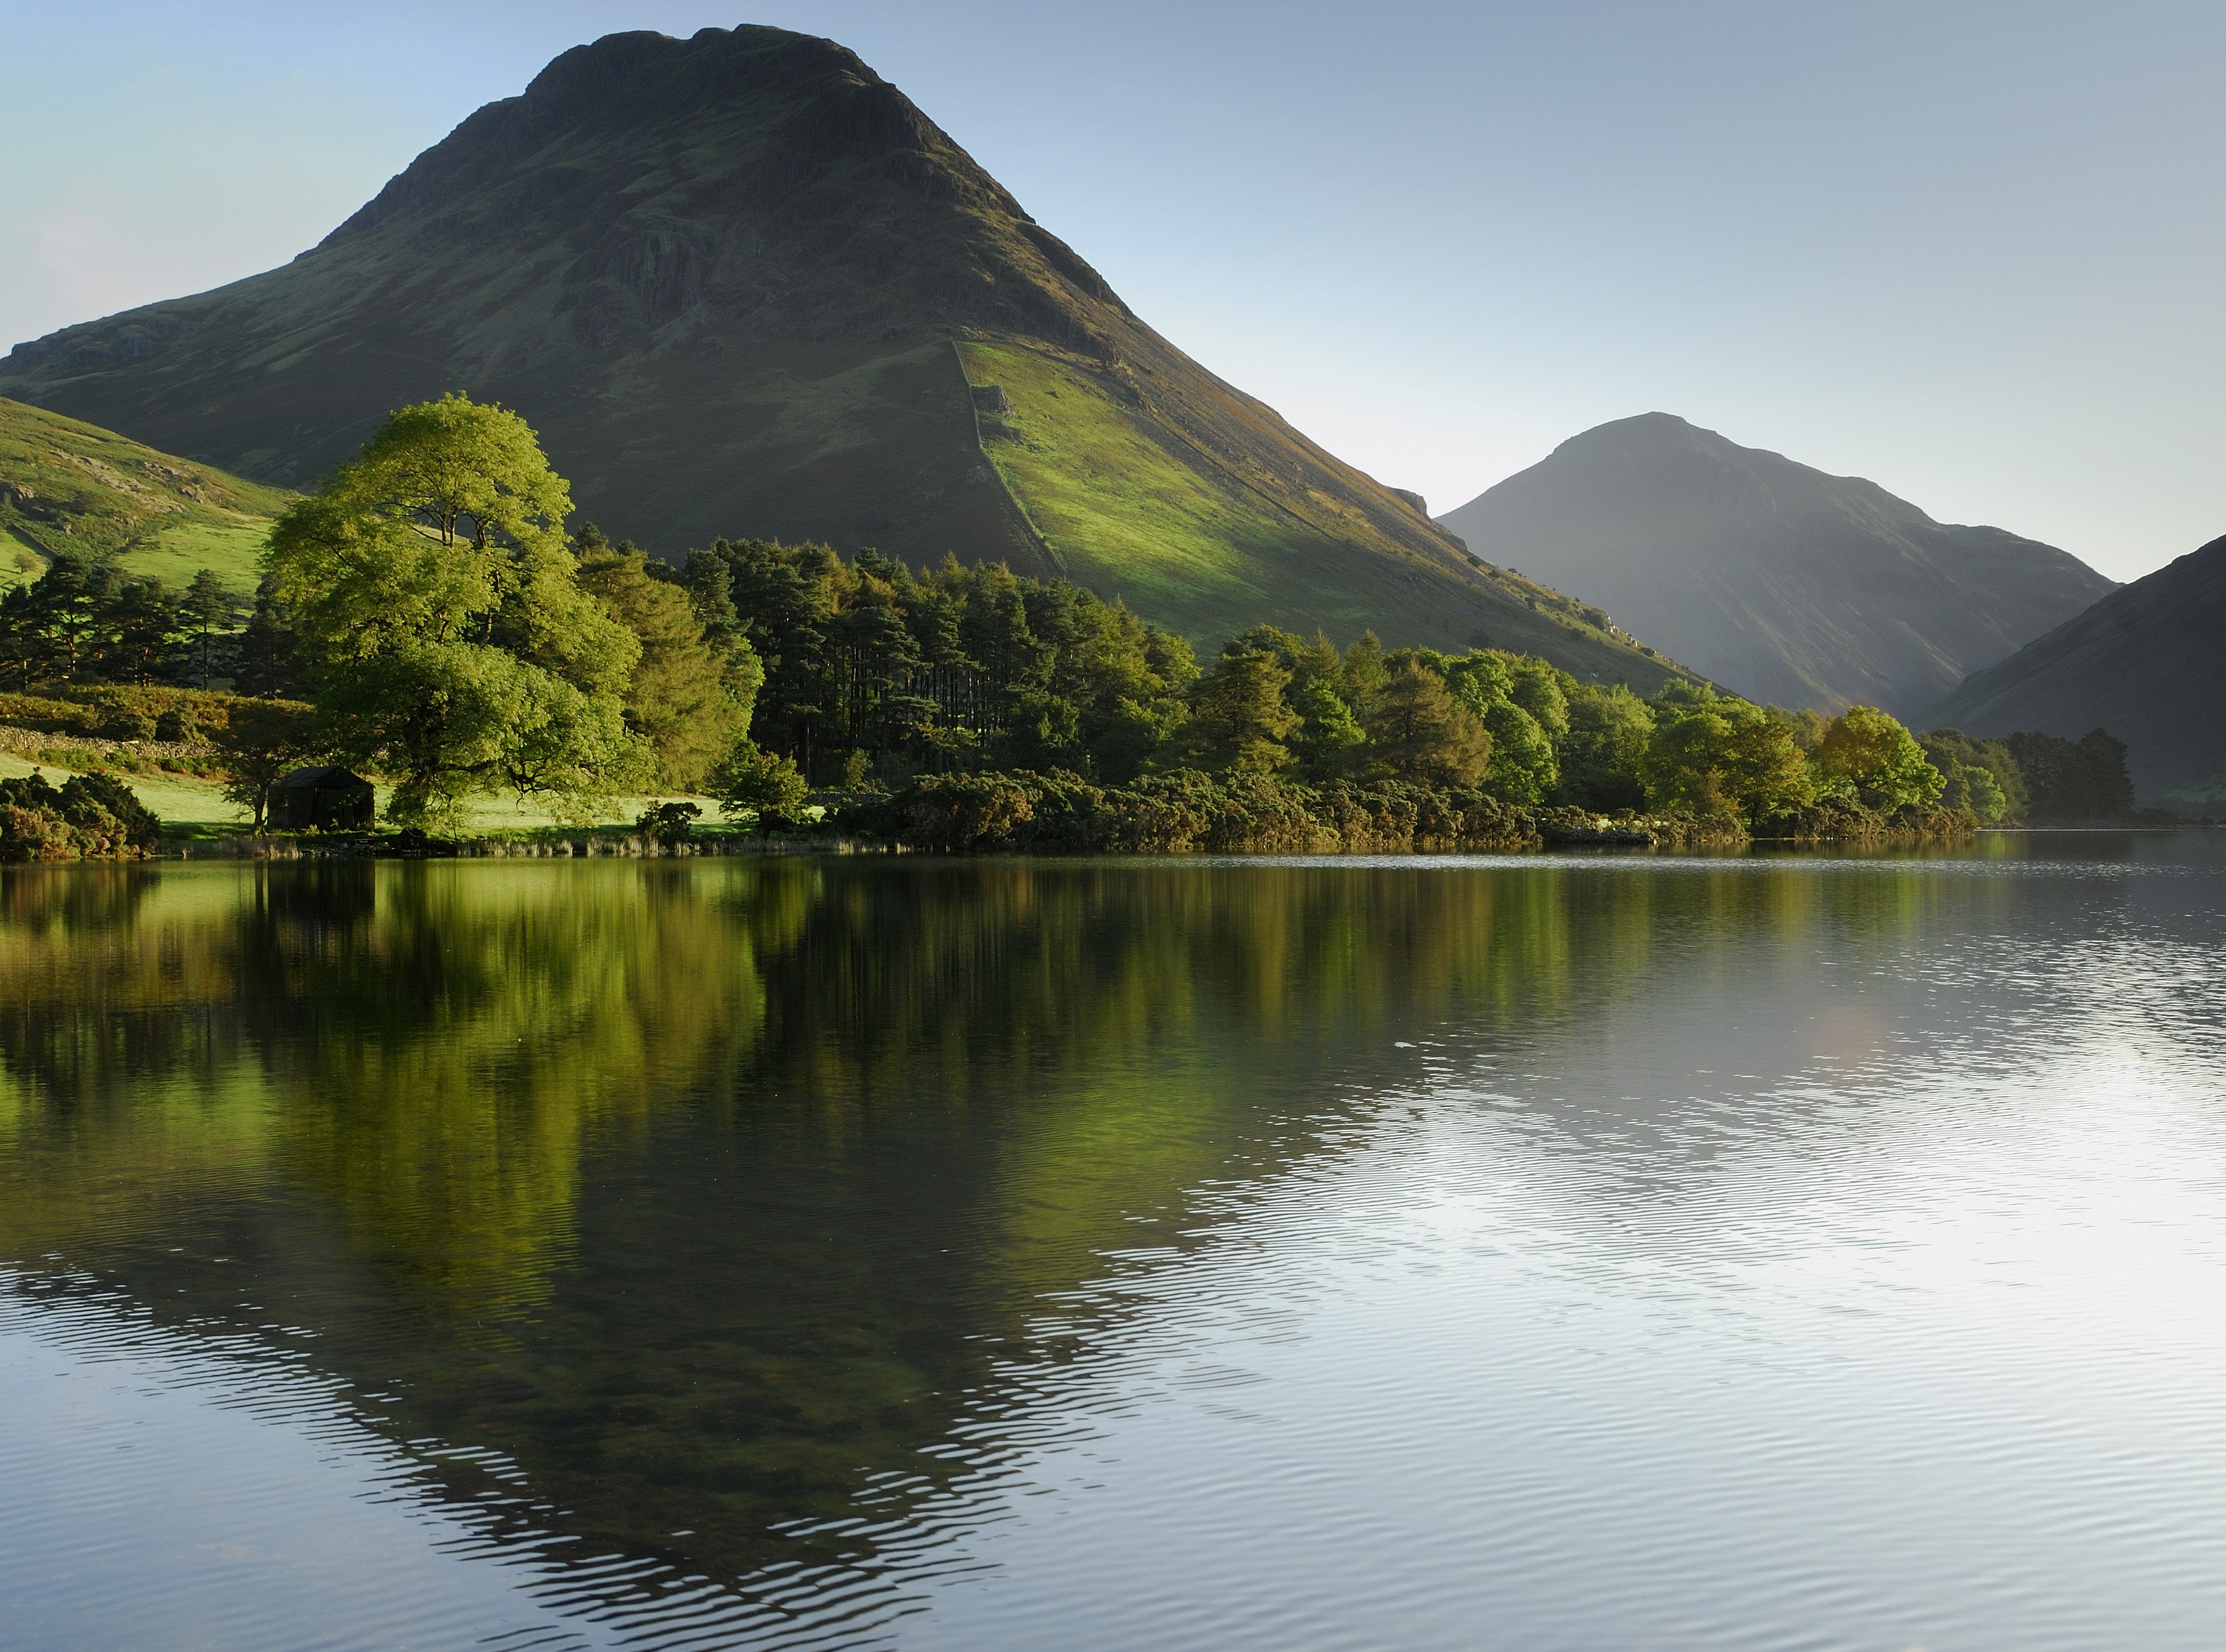 Wastwater. What will my abiding memories be of the Lake District? (Photo courtesy of www.cumbriaphoto.co.uk.)